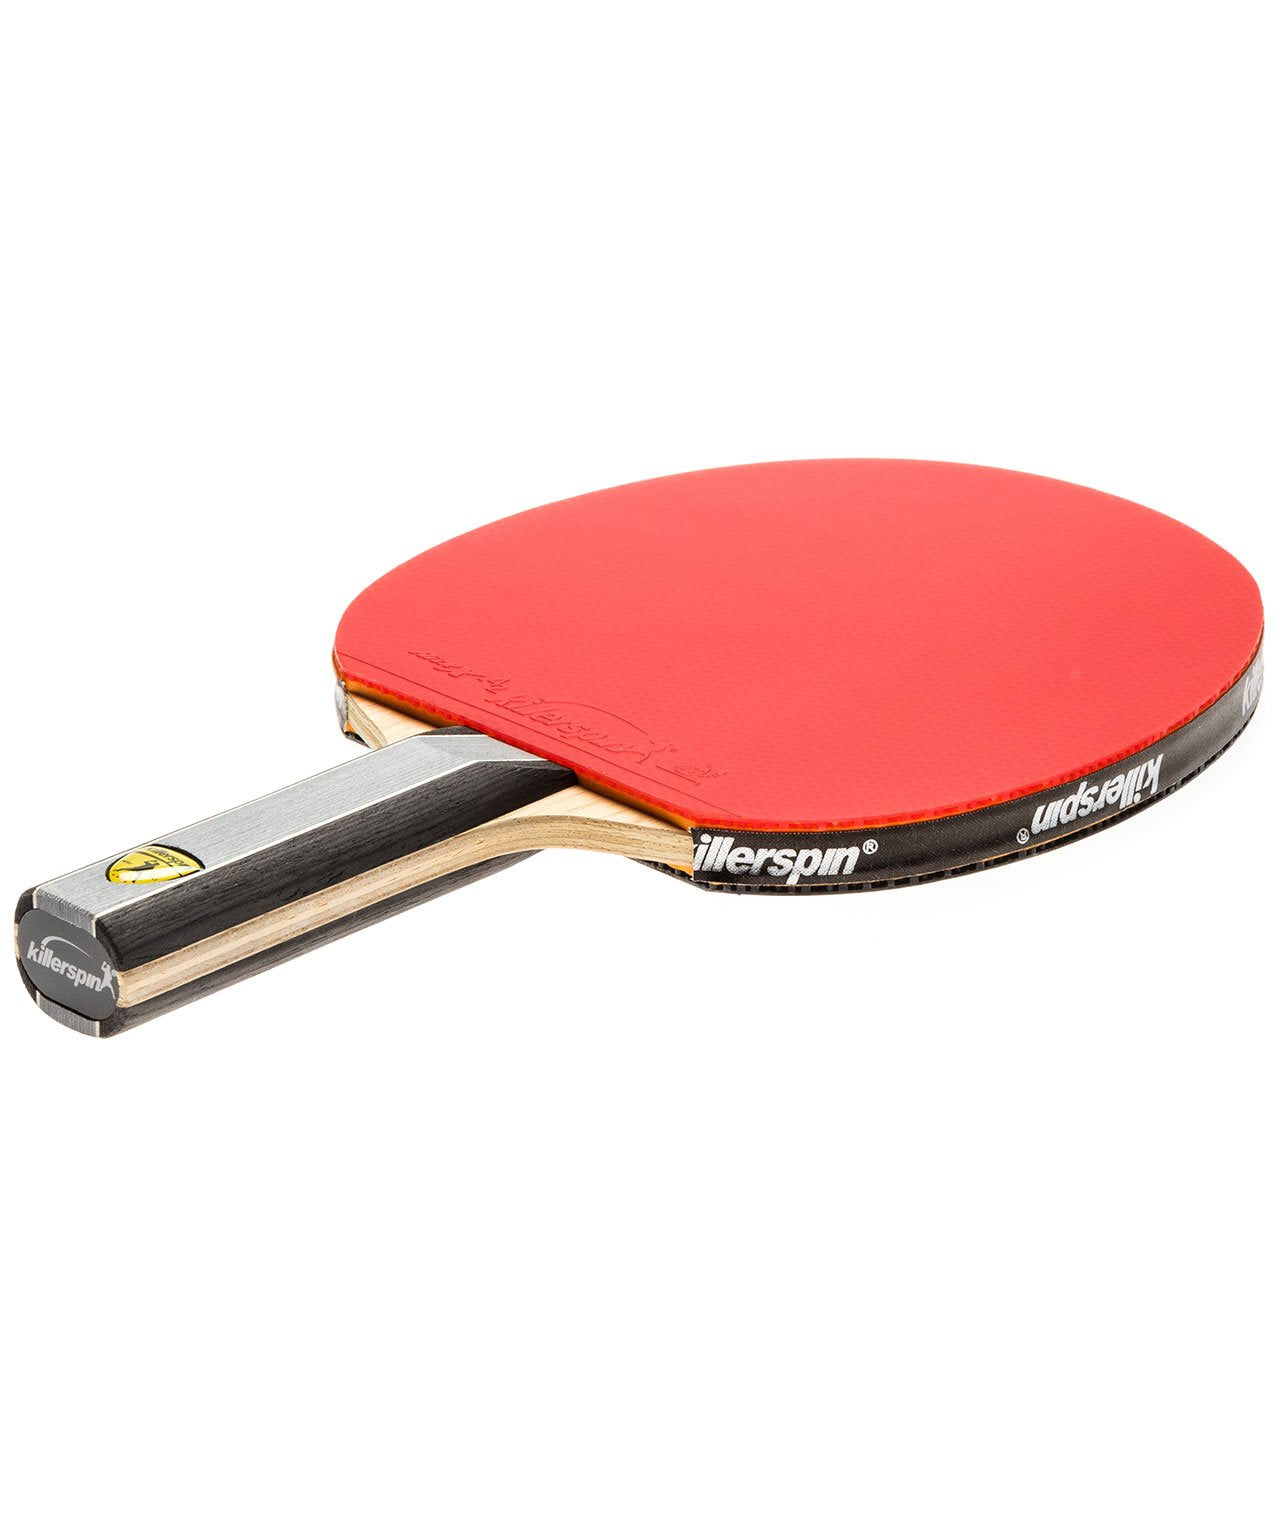 Killerspin Ping Pong Paddle Kido 7P RTG - Straight Red Rubber